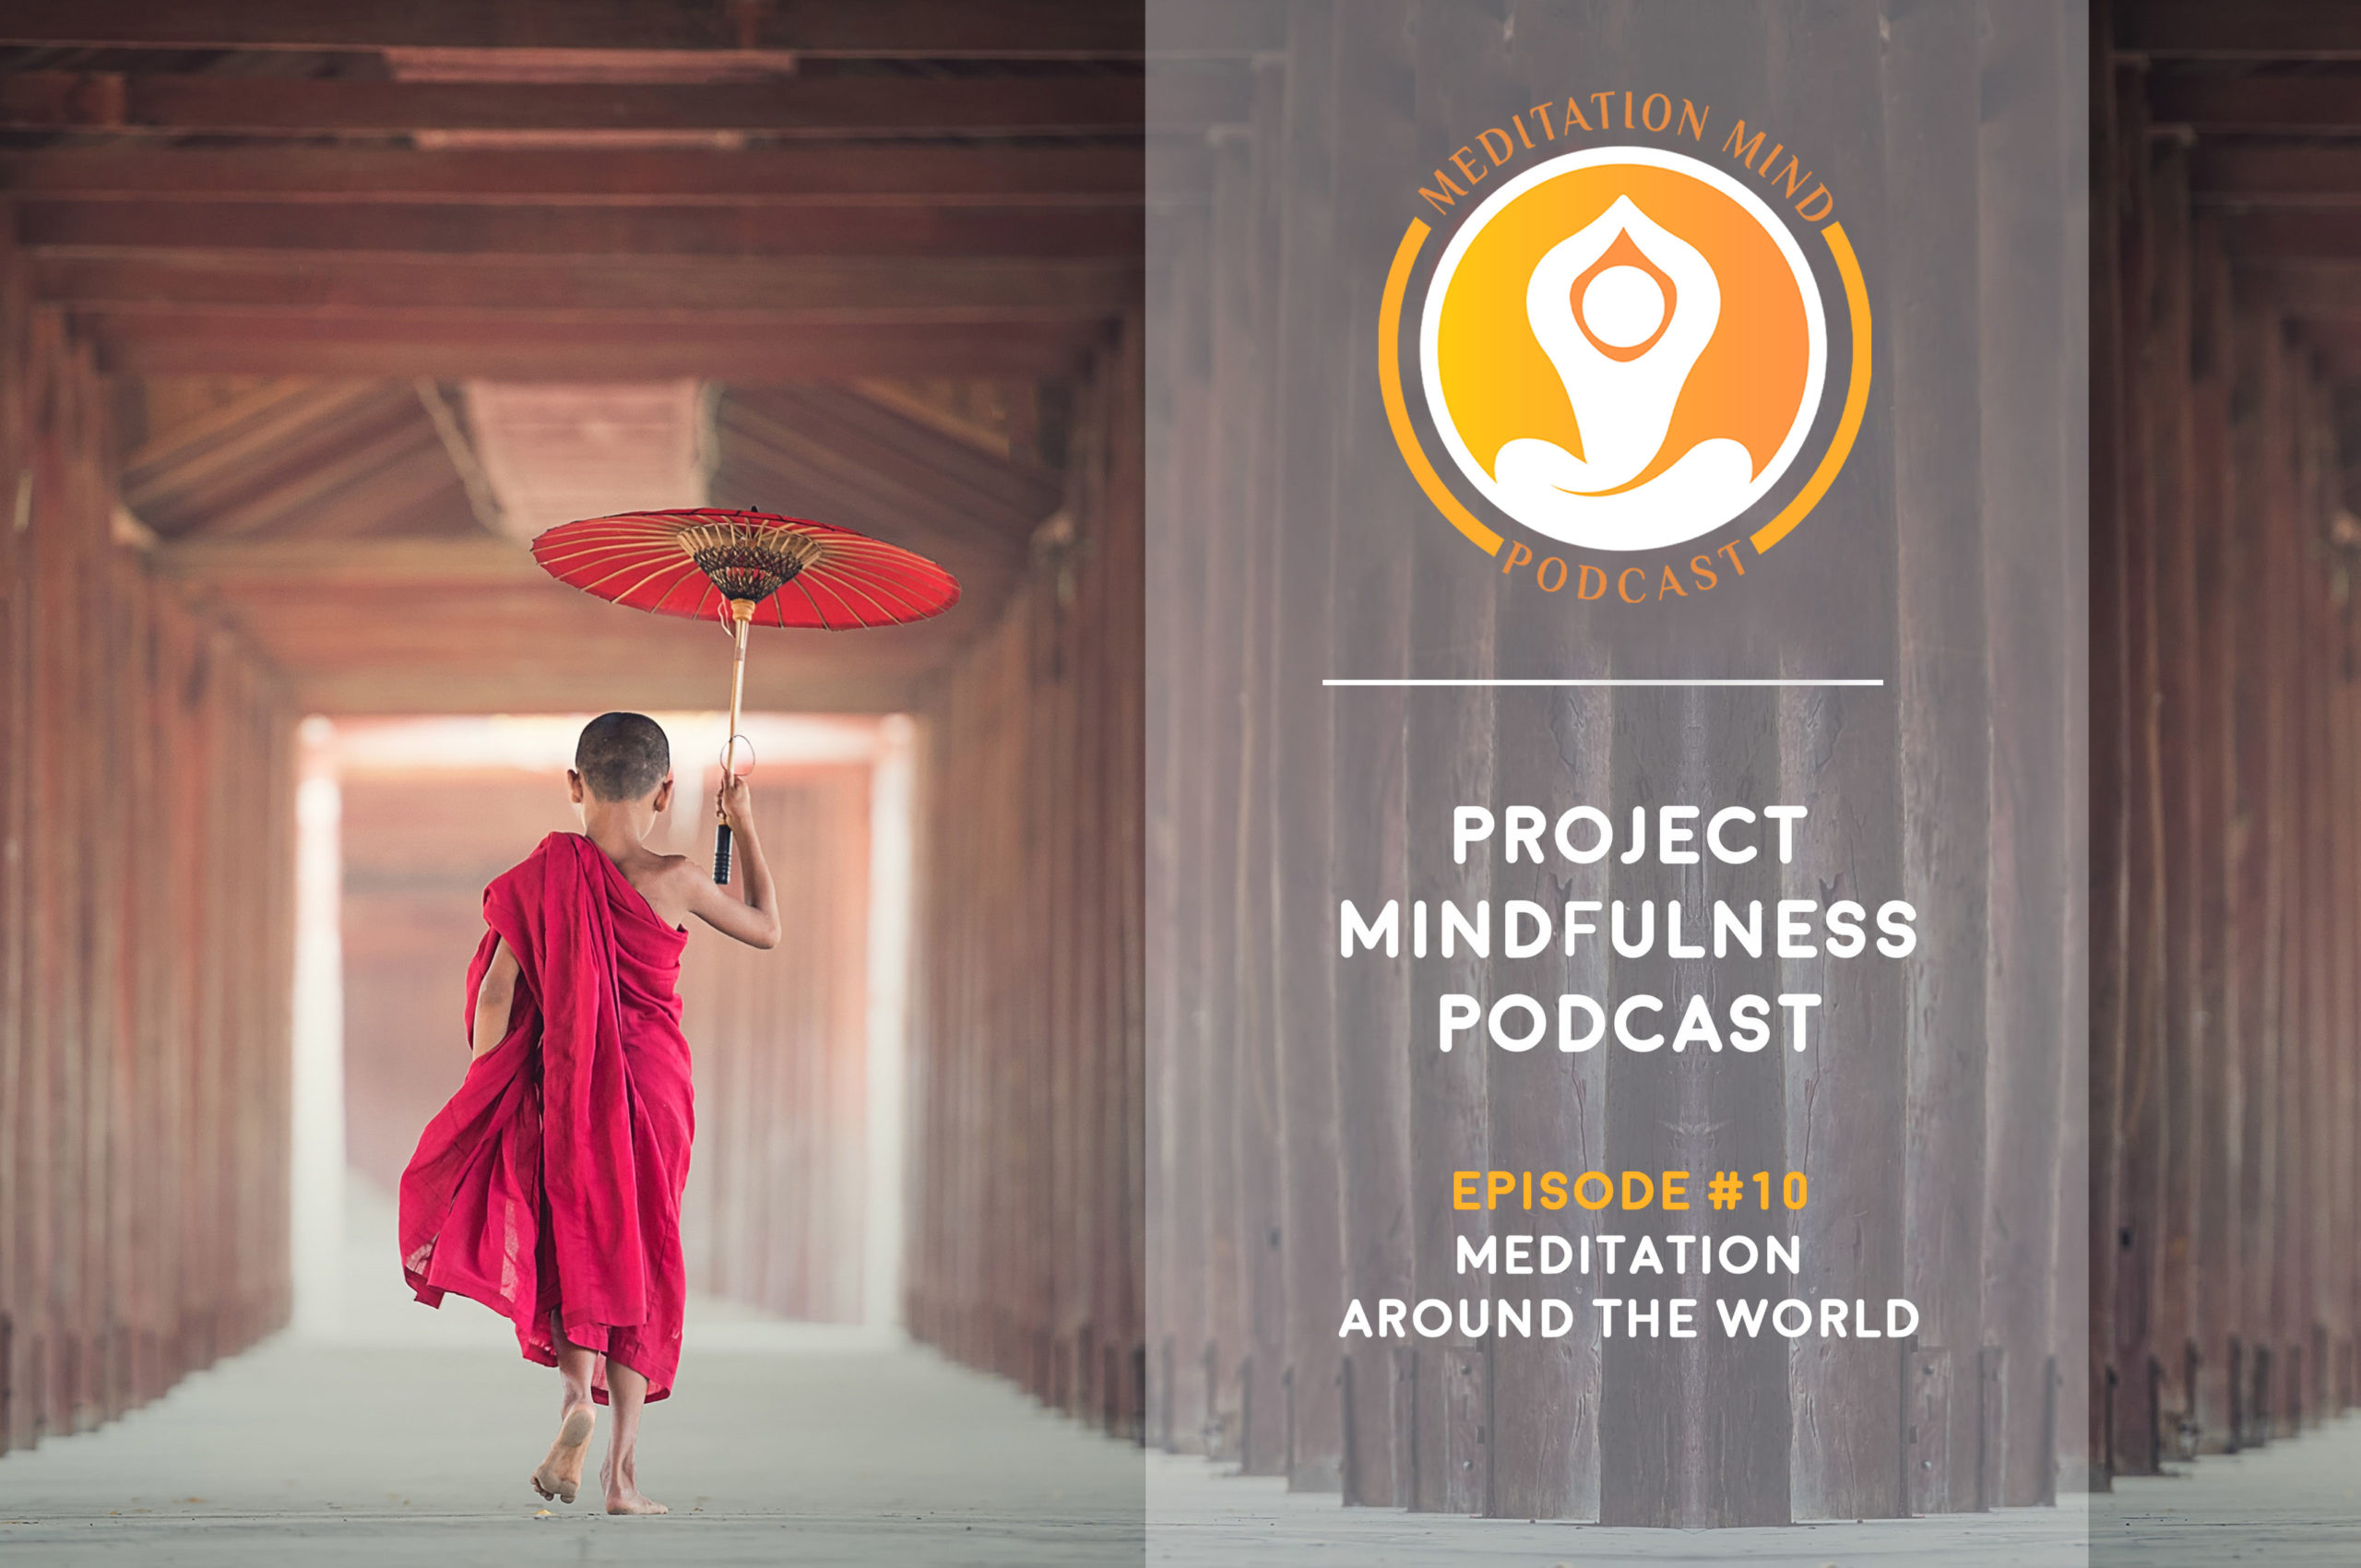 Lauren Skae talks about her journey travelling various countries and discovering their meditation practice